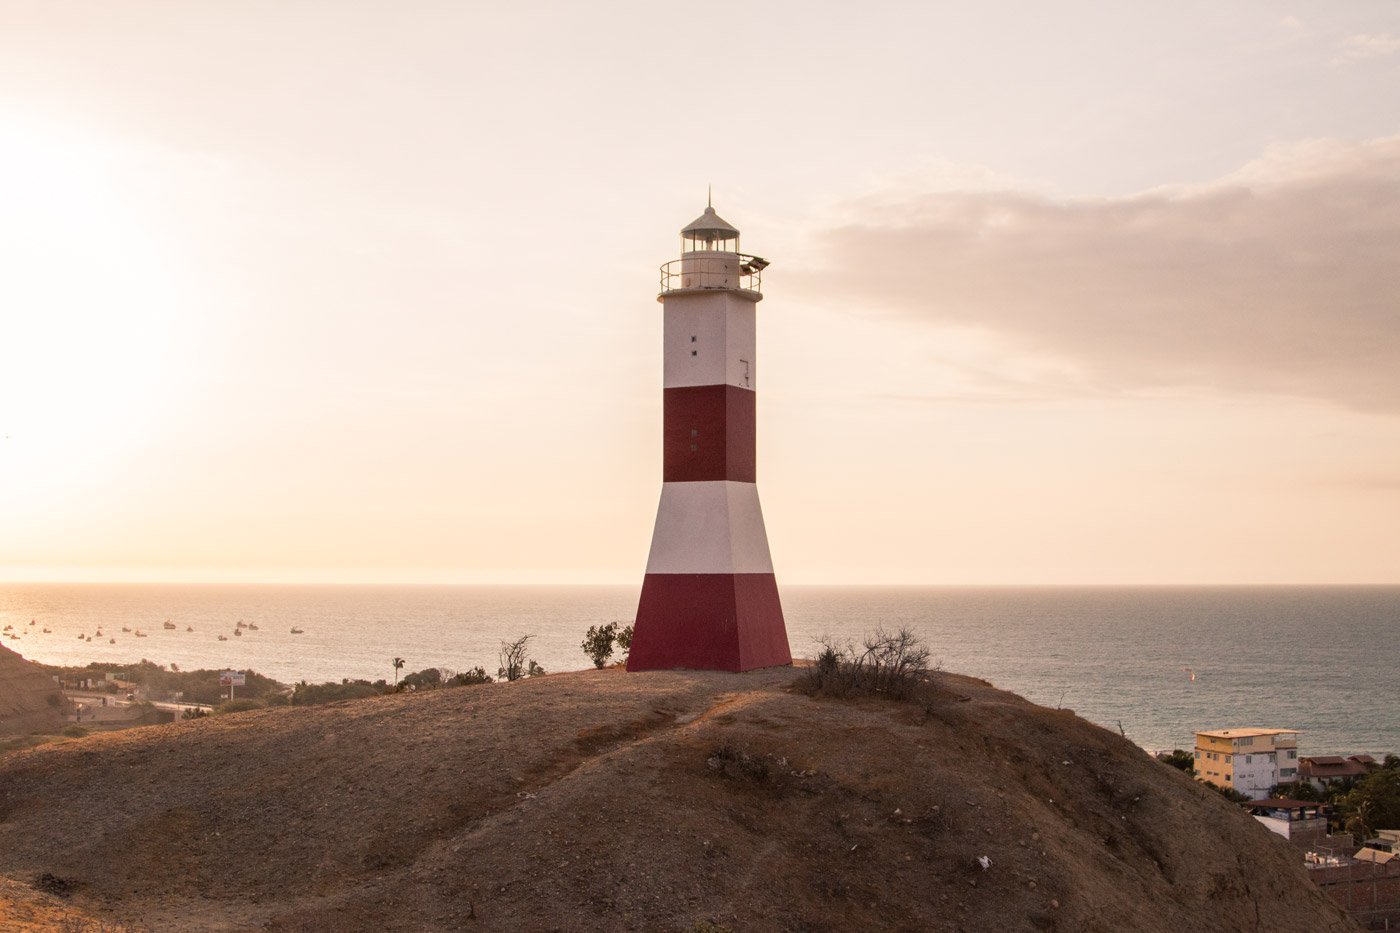 Watching the sunset from the lighthouse